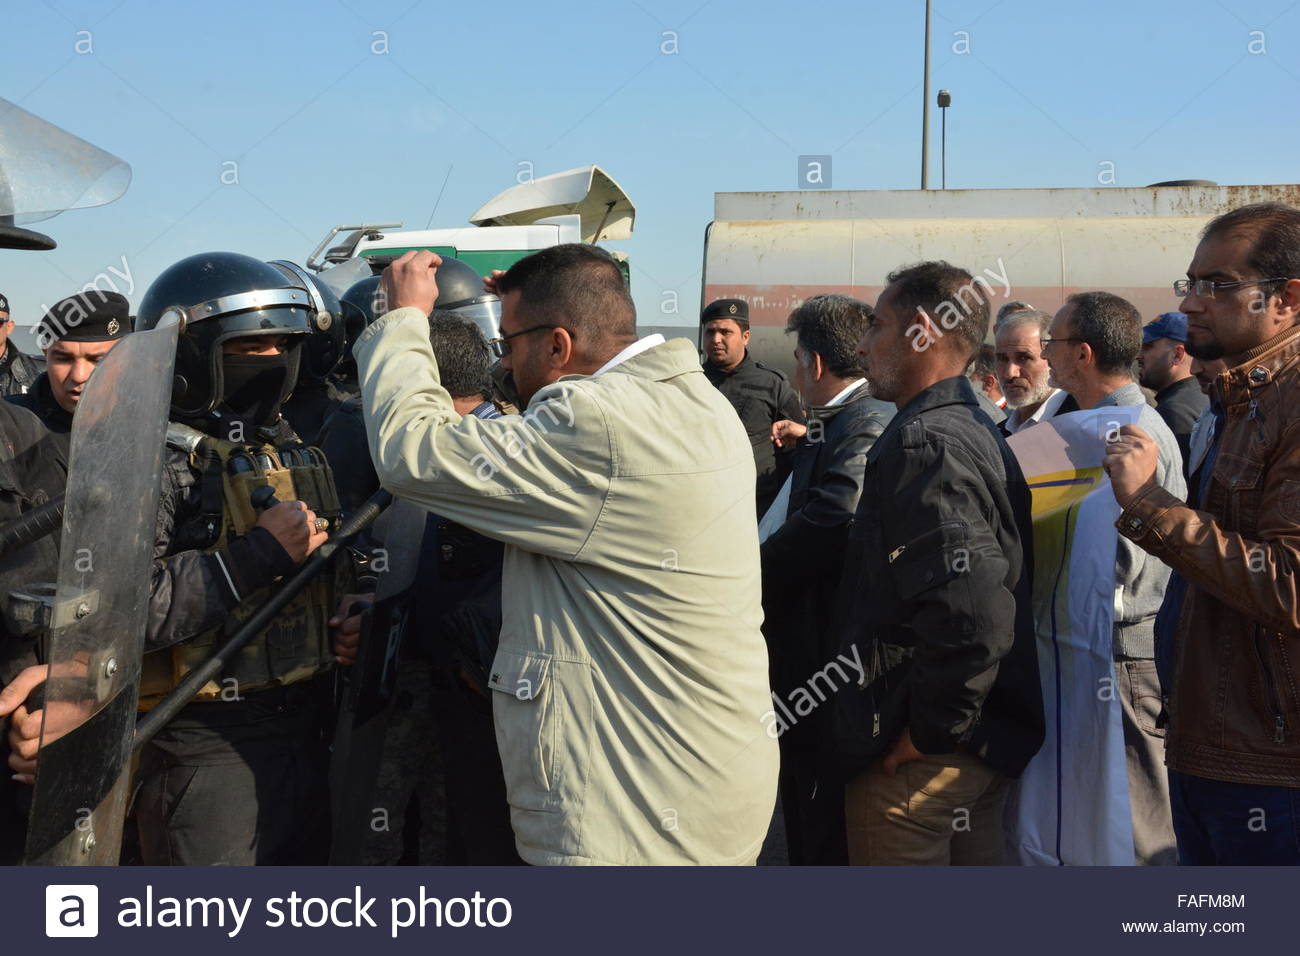 Baghdad, Iraq. December 29th, 2015. IRAQ, Baghdad: Demonstrators gather and confront police after planned government - Stock Image